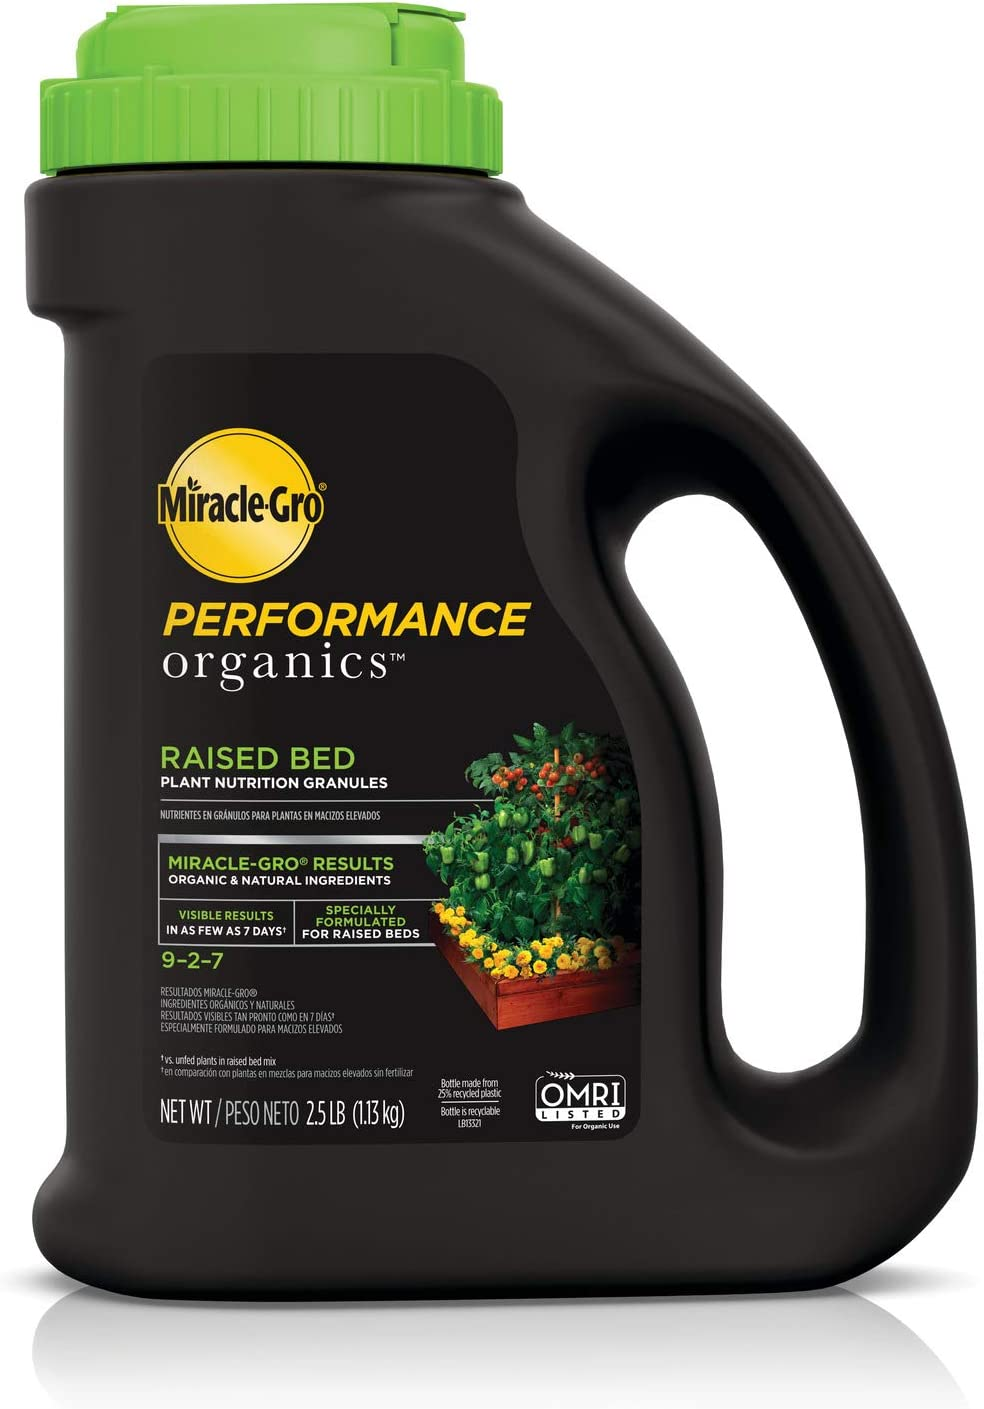 Miracle-Gro Performance Organics Raised Bed Plant Nutrition Granules - Plant Food with Natural & Organic Ingredients, for Vegetables, Fruits, Herbs and Flowers in Raised Beds, 2.5 lbs.